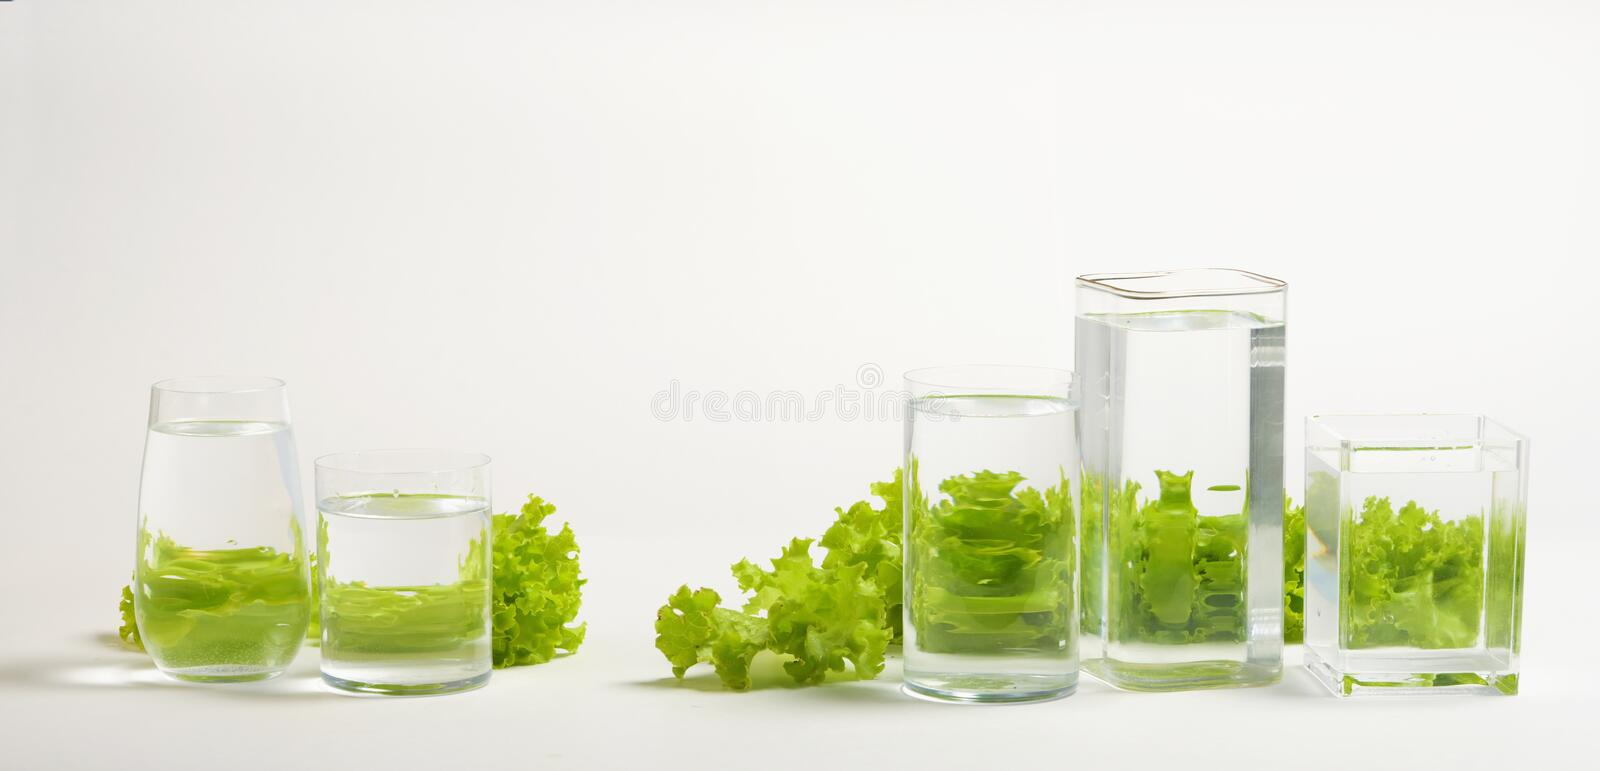 Foods distorted through liquid and glass on white background. Perspective, fractured and skewed images of common foods as seen through vessels filled with water royalty free stock photo